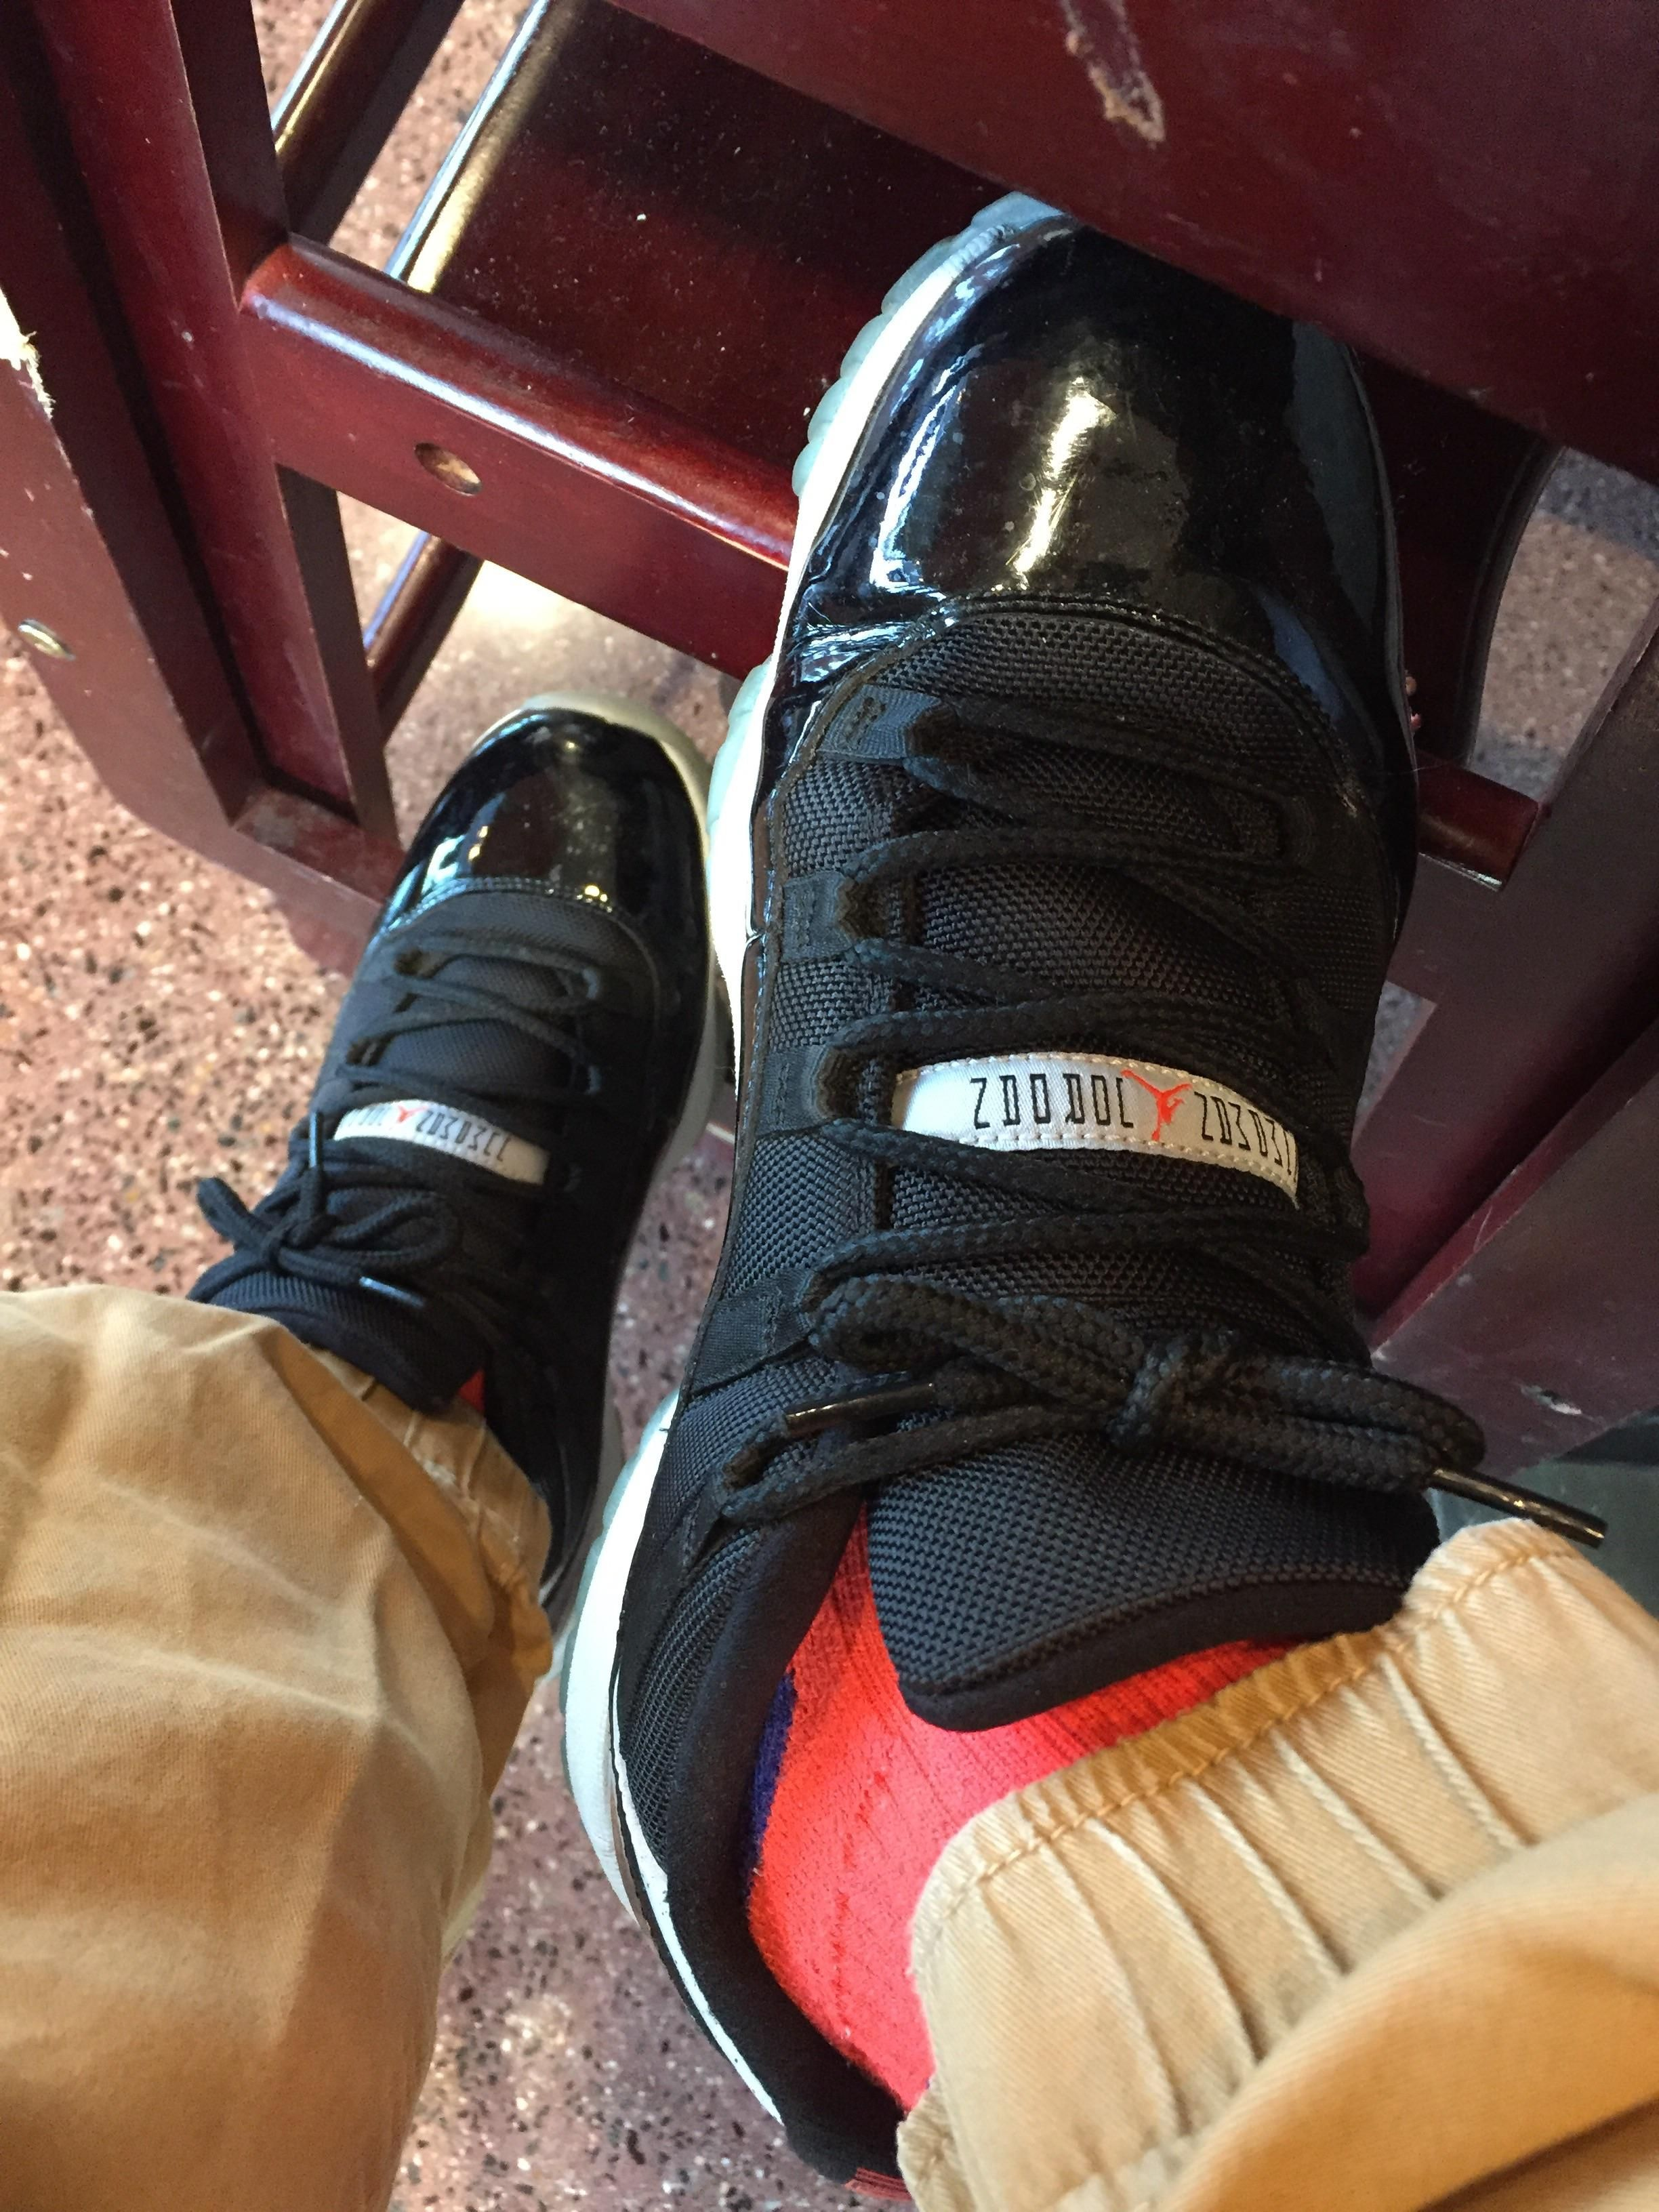 8f003c4588223e  WDYWT  Infrared 11 lows for MJ Mondays. Also rocking the infrared Jordan  socks to match.